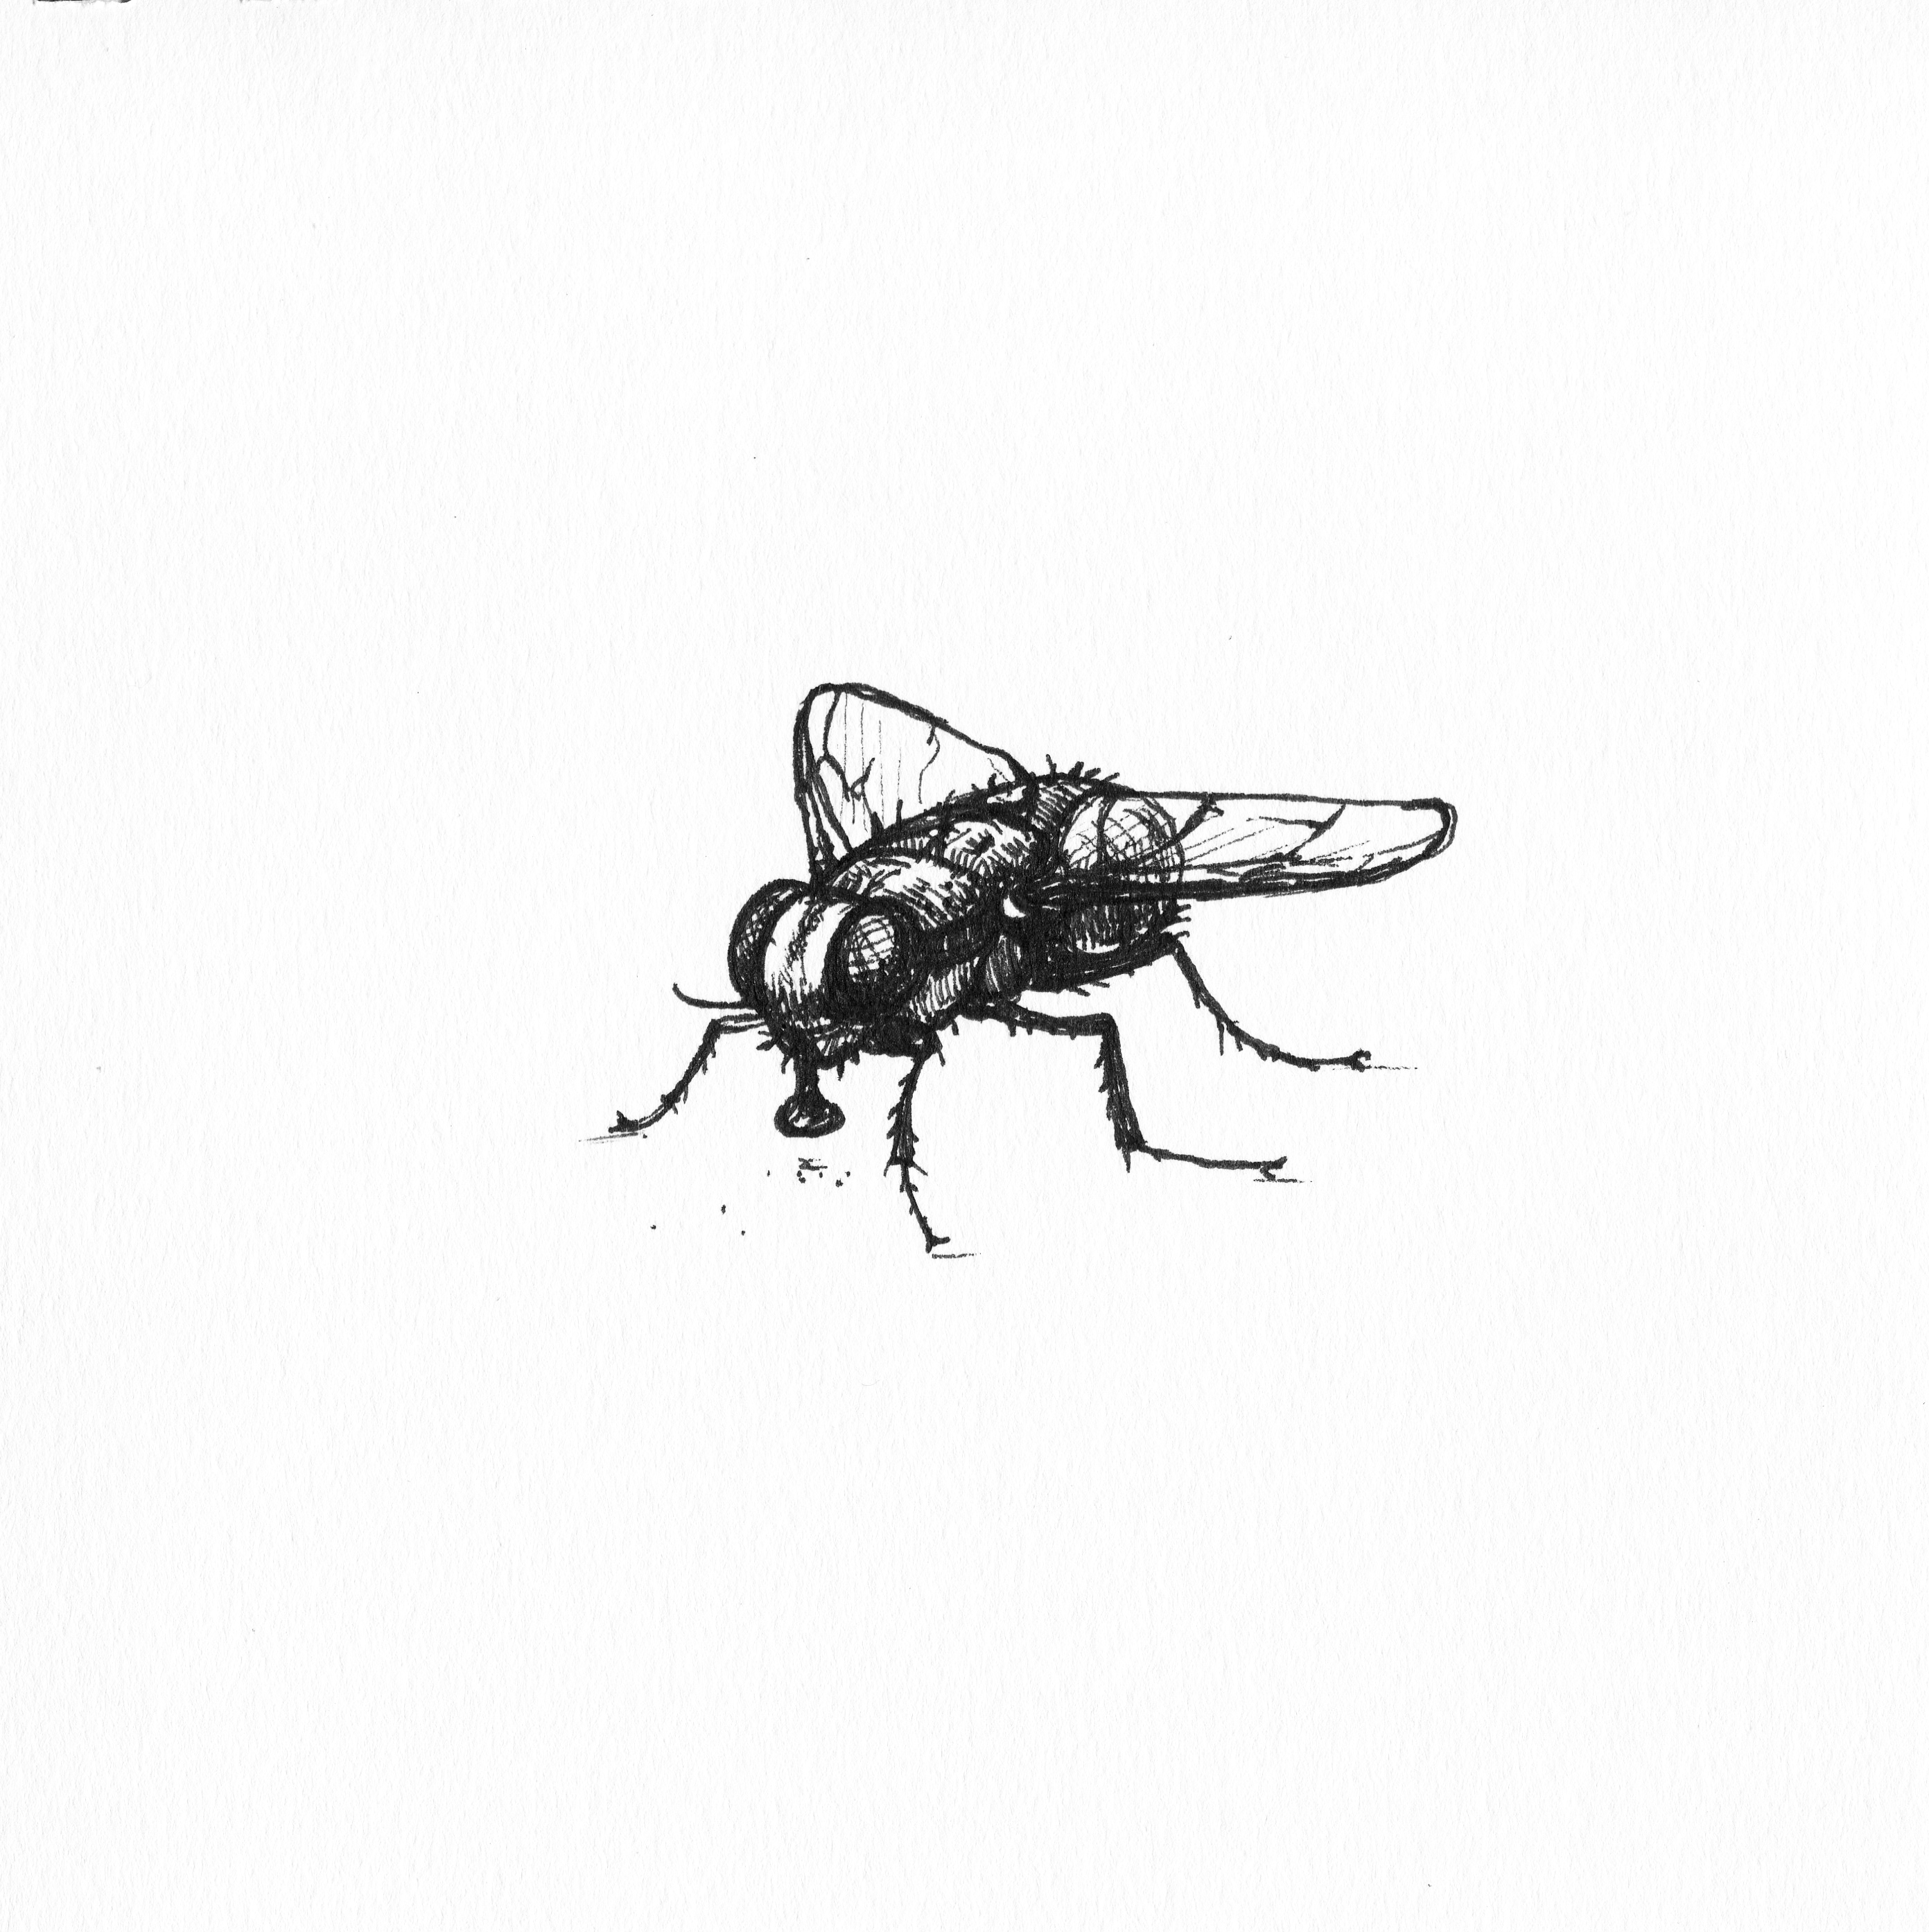 House Fly Fly Illustration Insect Fly Illustration Fly Sketch